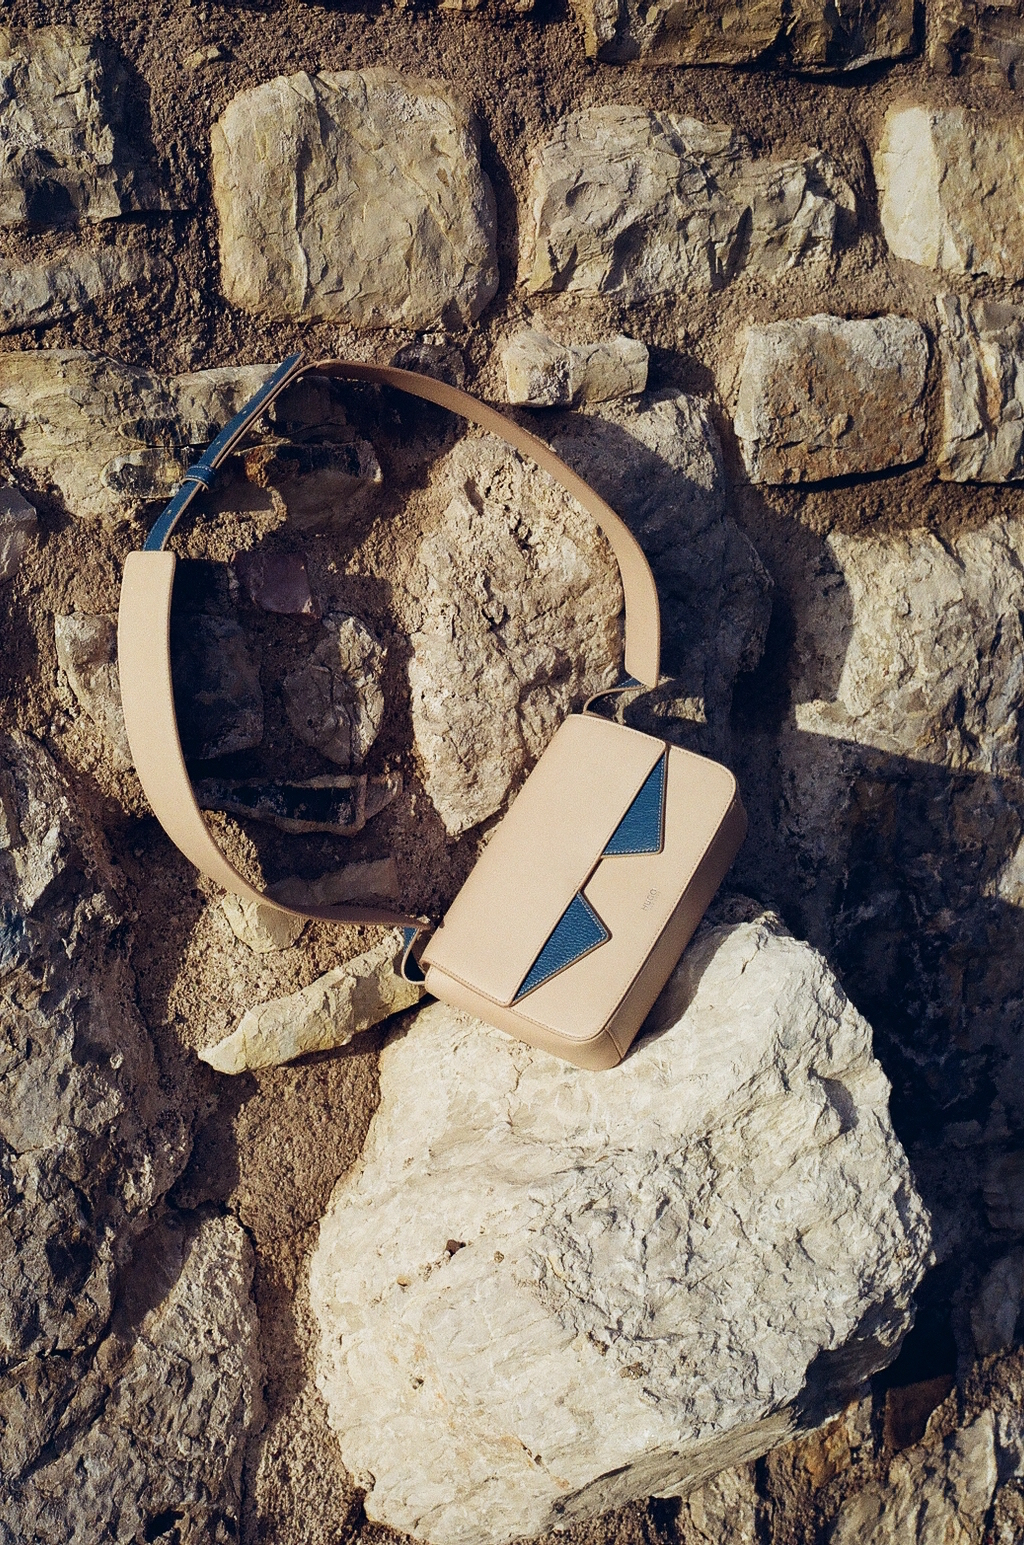 GREECE Travel Images GRIECHENLAND PHOTOGRAPHS KIRA STACHOWITSCH SUPERNATURAL ACCESSORIES